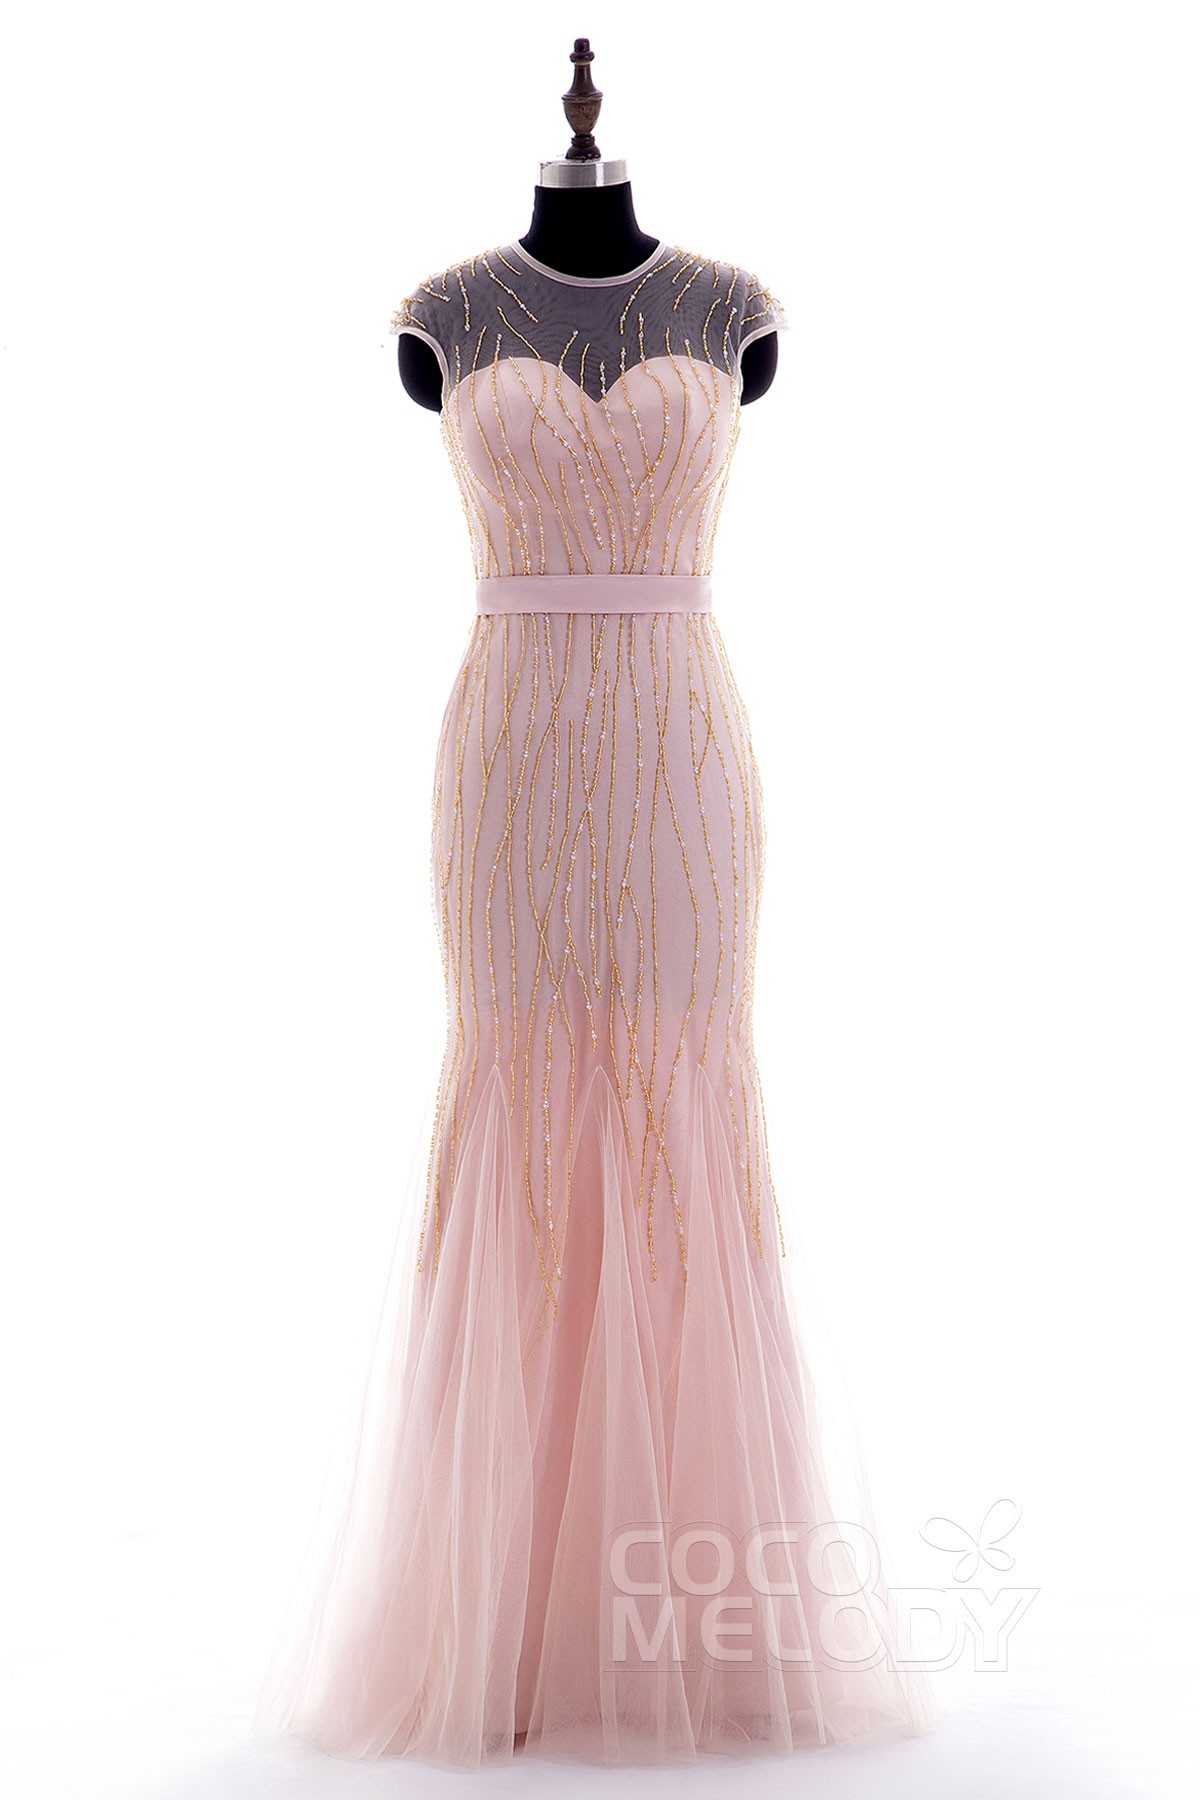 fa1423a42c3 Vintage Sheath-Column Illusion Floor Length Tulle Cap Sleeve Zipper Prom  Dress Beading Ribbons F14P0040